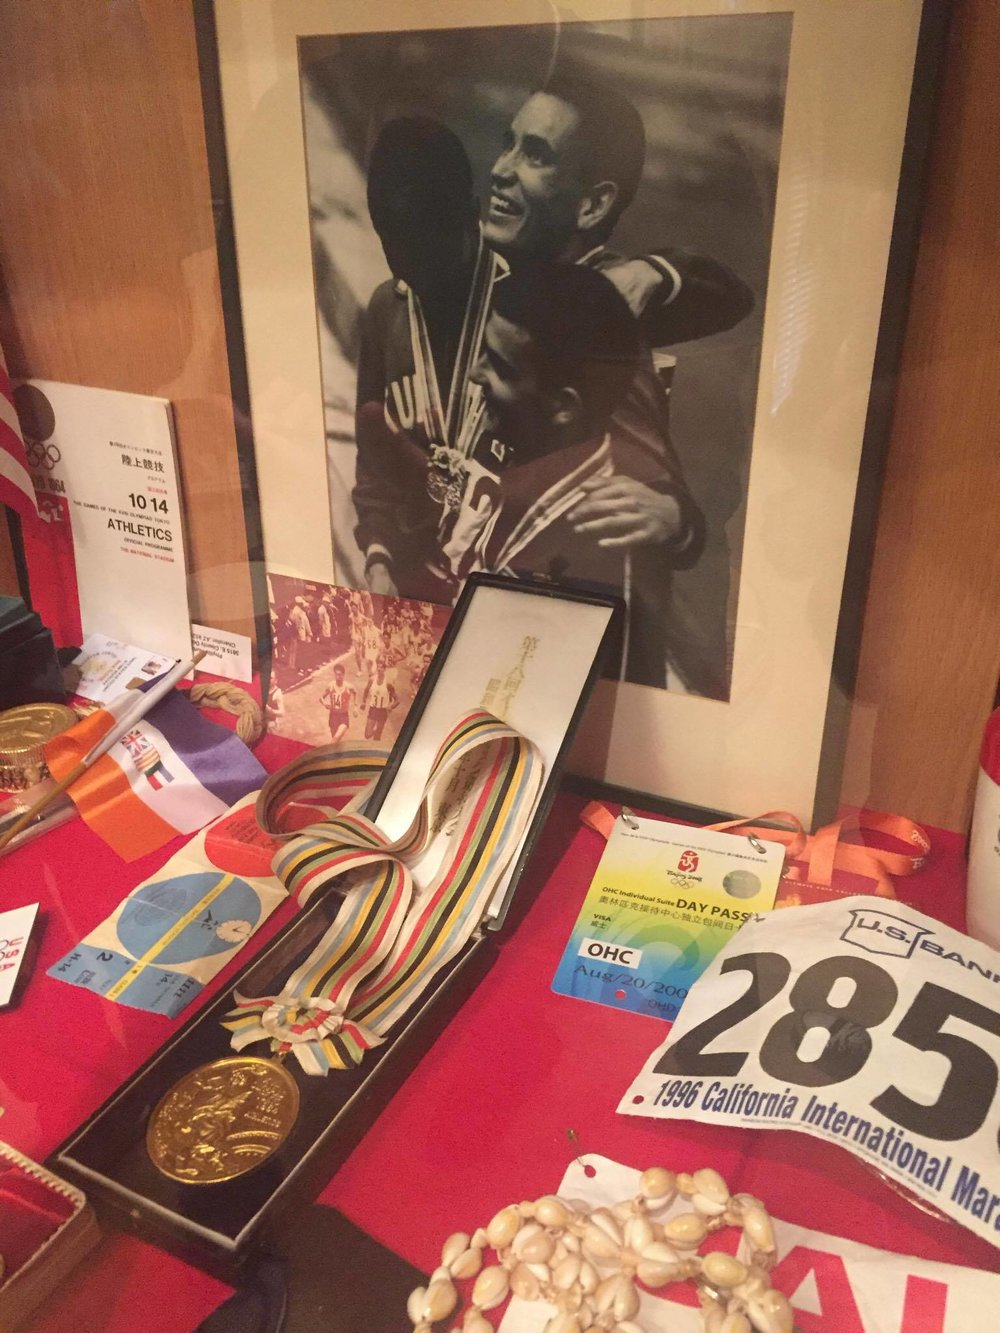 Billy Mills's 1964 Olympic Medal, alongside other running memorabilia from over the years. Use of this photograph courtesy of Dominic Mills, Billy's grandson and current medal owner.